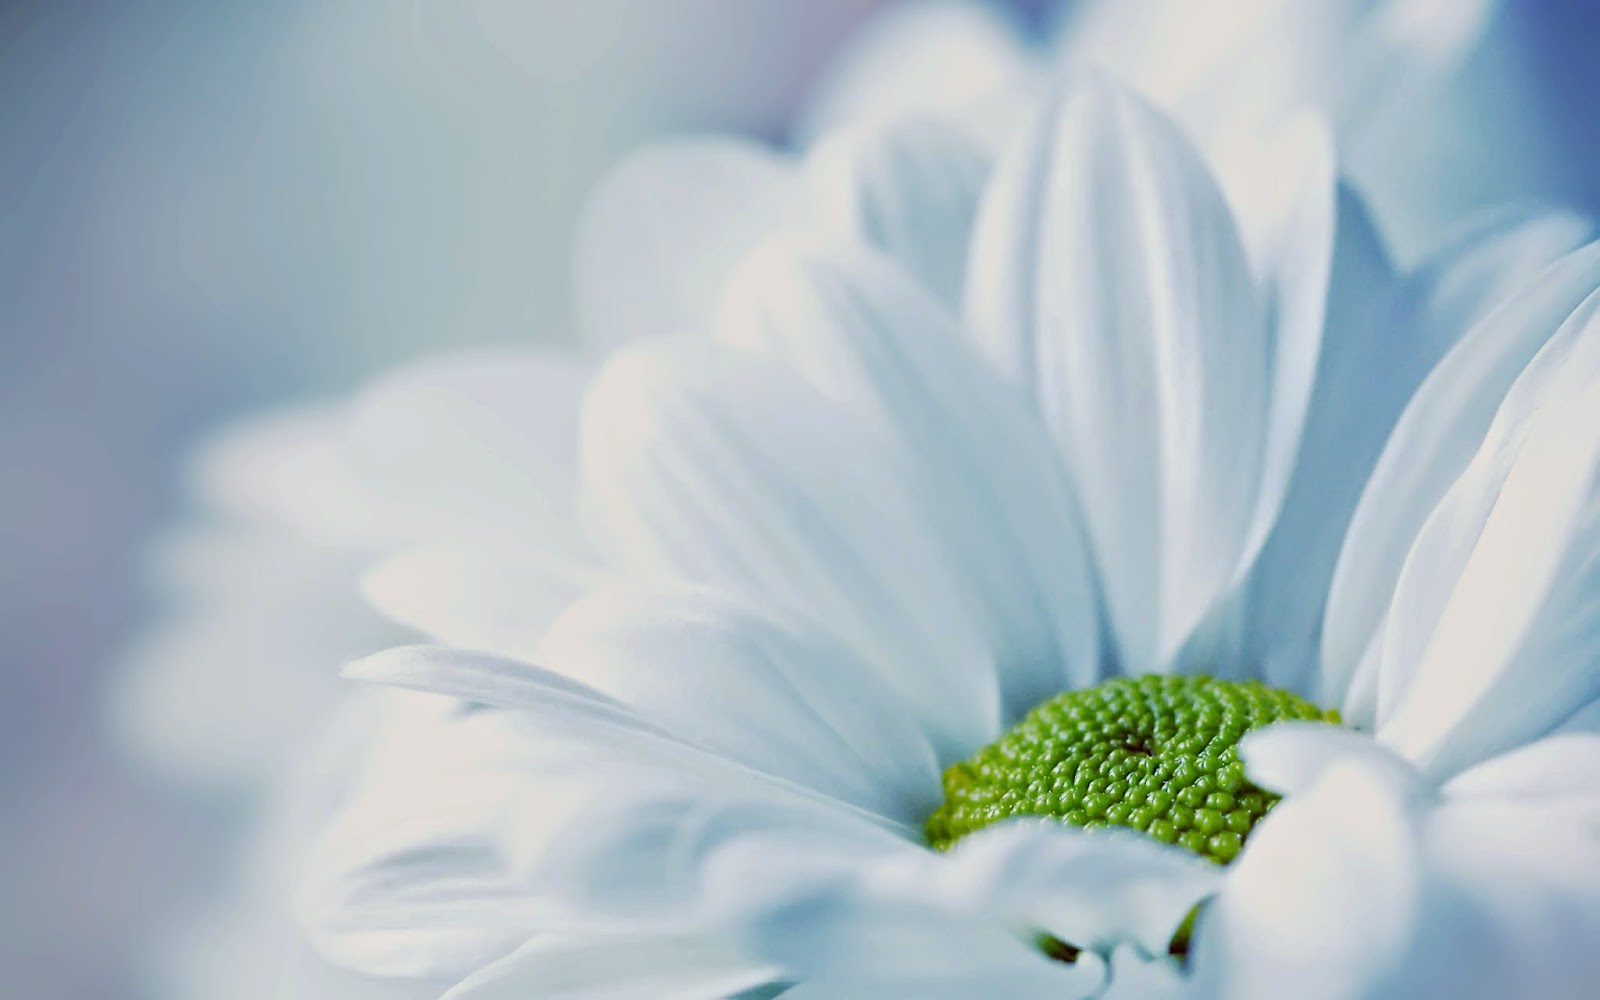 pure-white-daisy-flower-image-HD-free-download.jpg